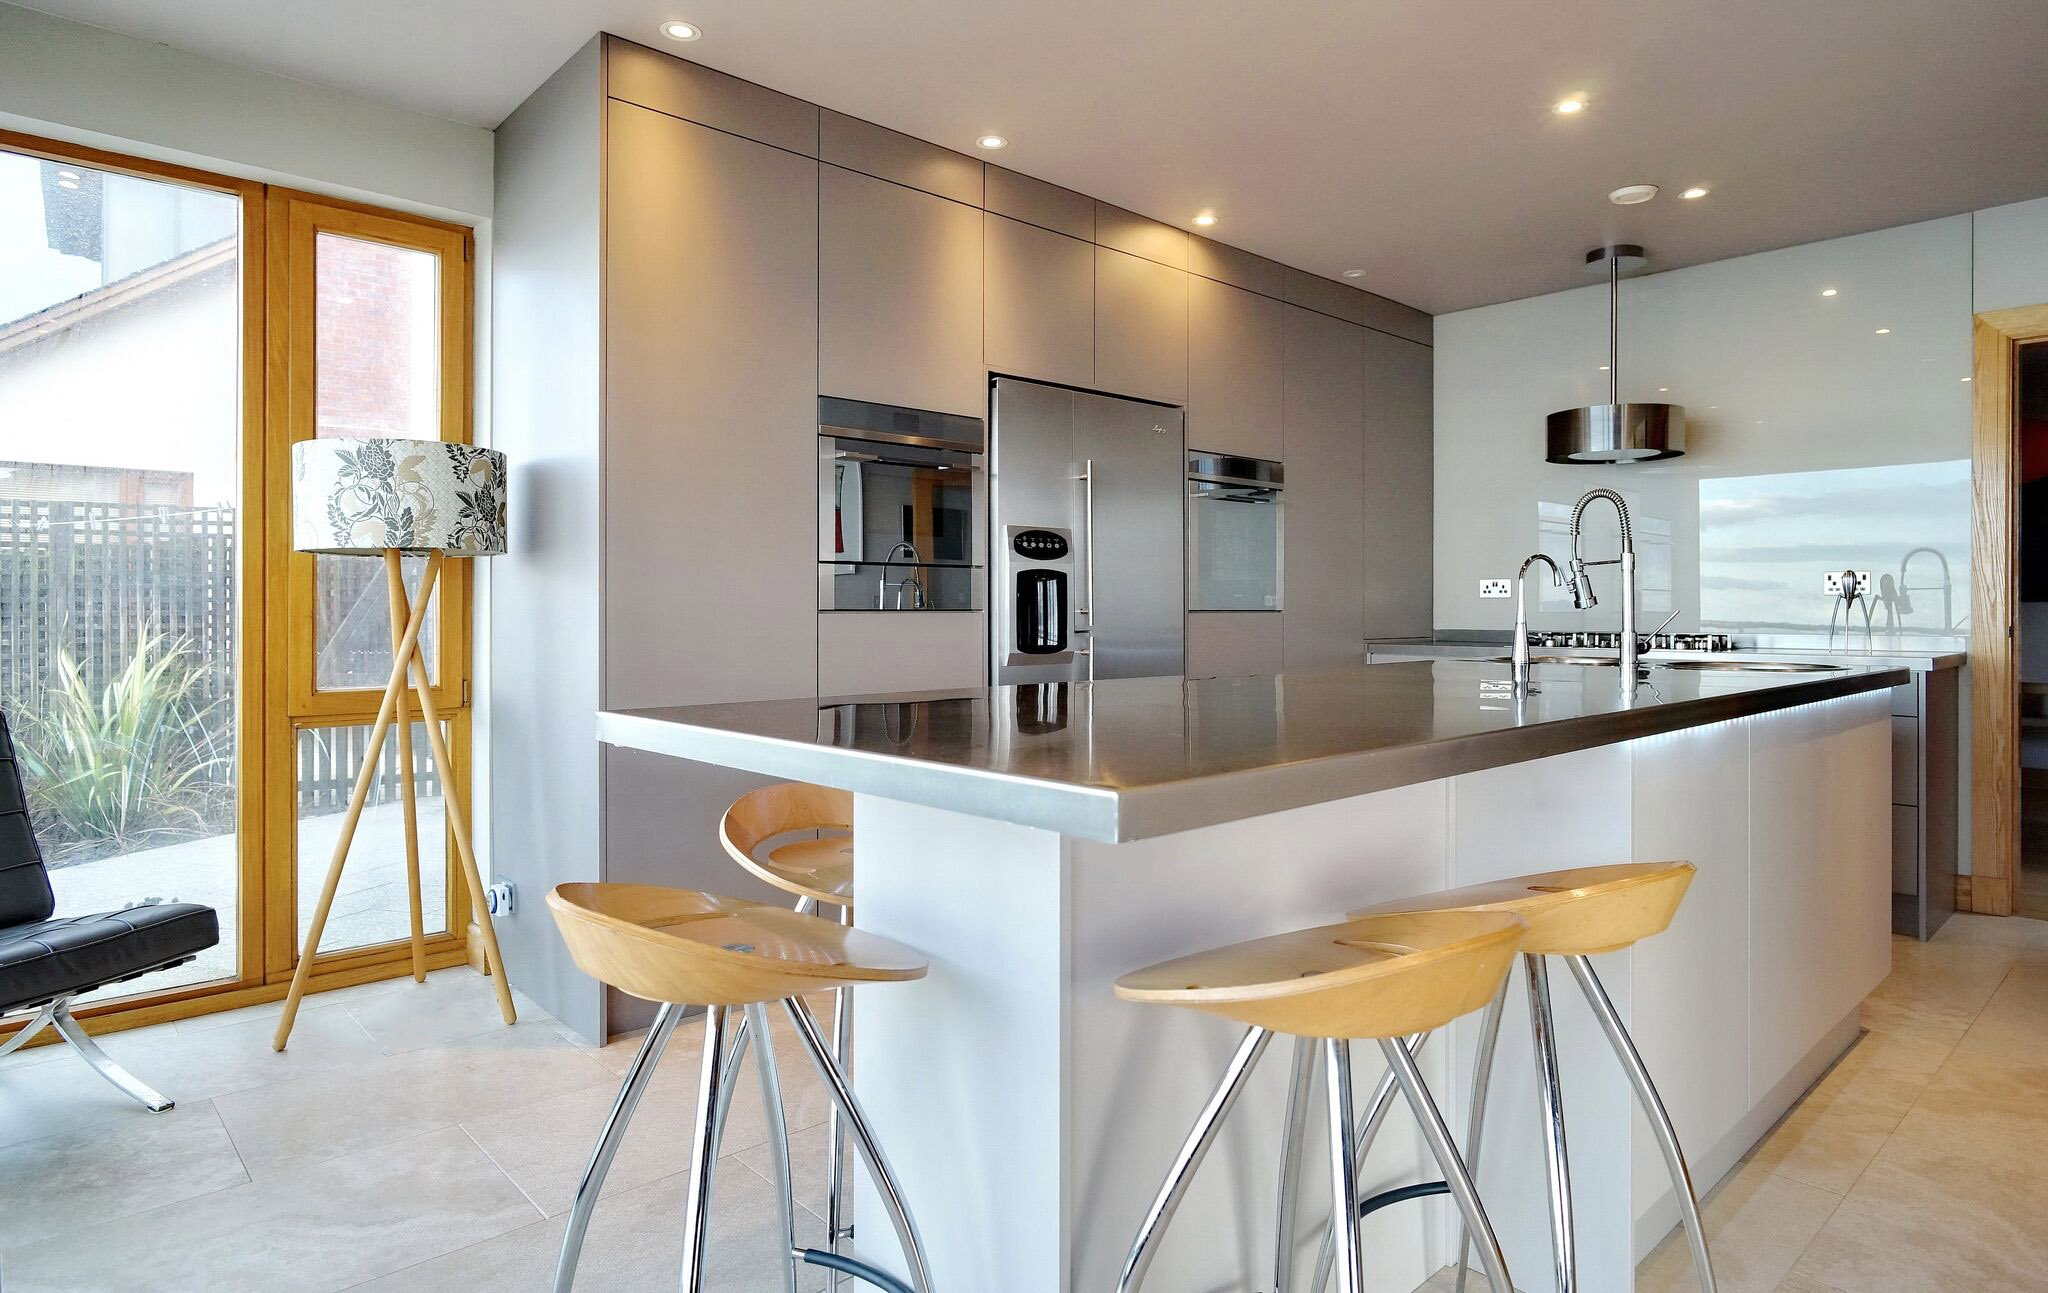 Full View-Adornas Kitchens-Basalt & Cashmere Matte Kitchen